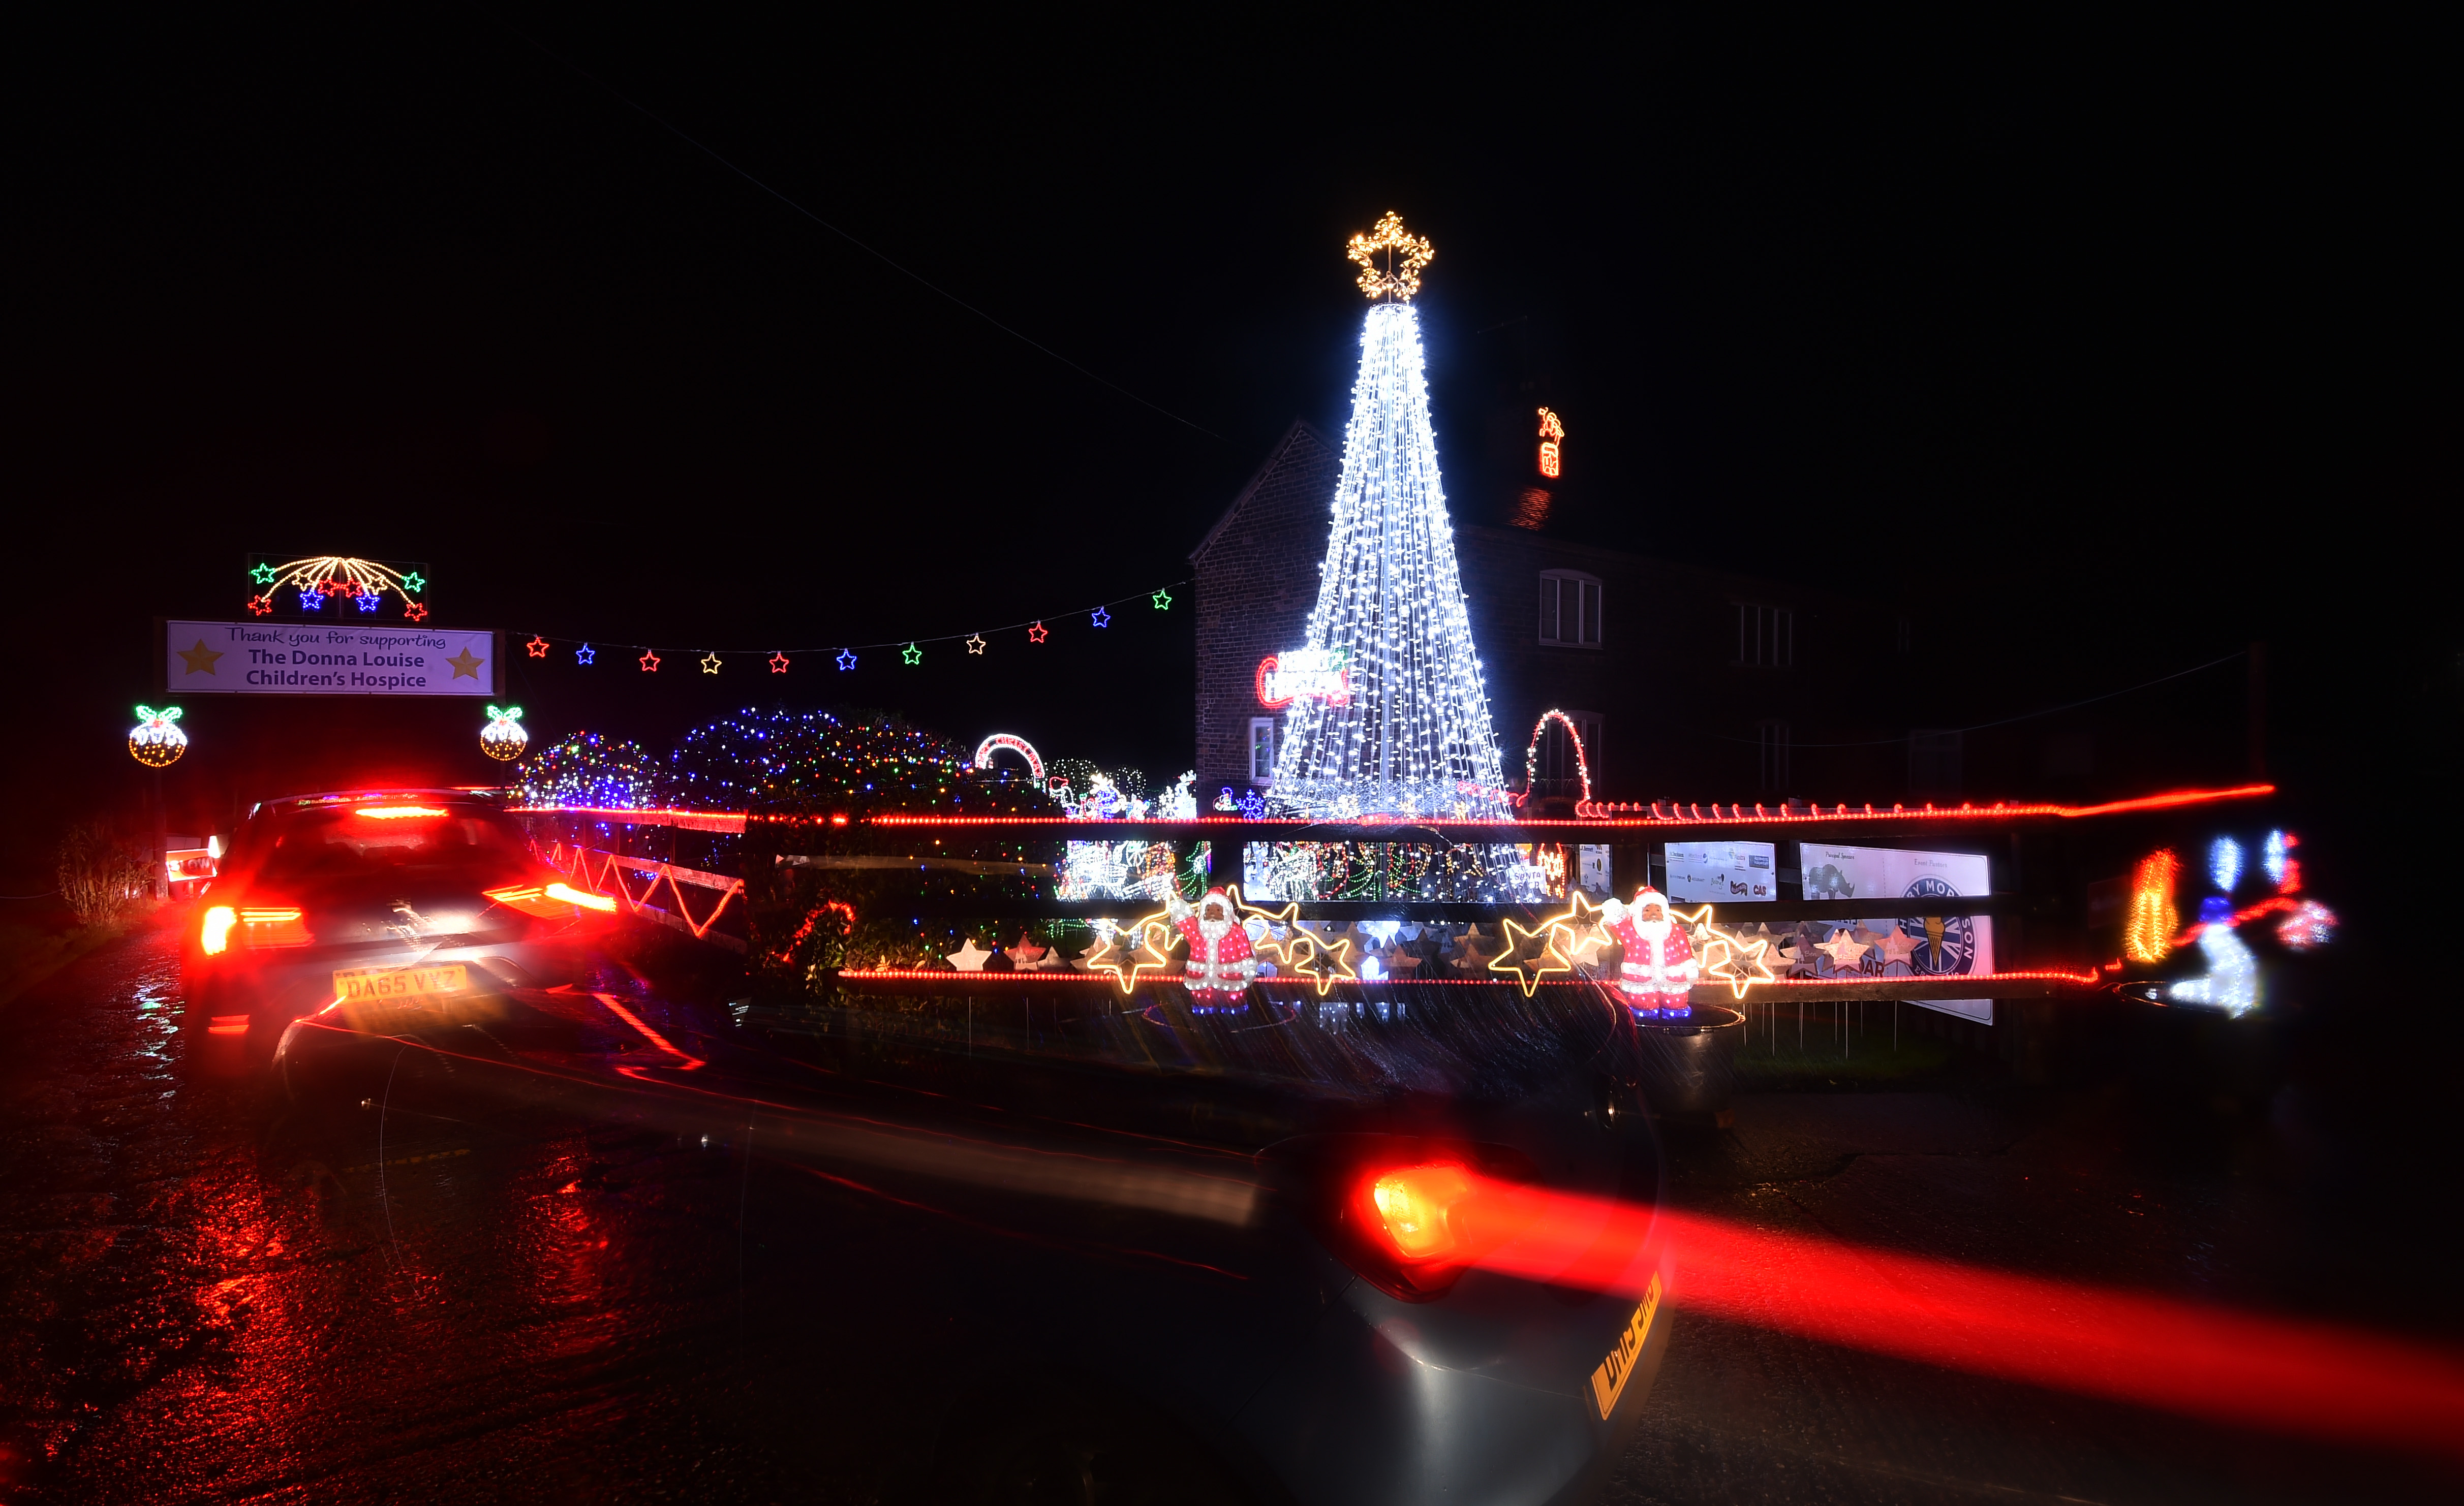 CREWE, ENGLAND - DECEMBER 03: Cars drive past the Weston Christmas light display on December 03, 2020 in Crewe, England. Graham Witter and his family are hosting a drive-through Christmas lights display event at their family home to help raise money for the Donna Louise charity in memory of Graham's sister. (Photo by Nathan Stirk/Getty Images)